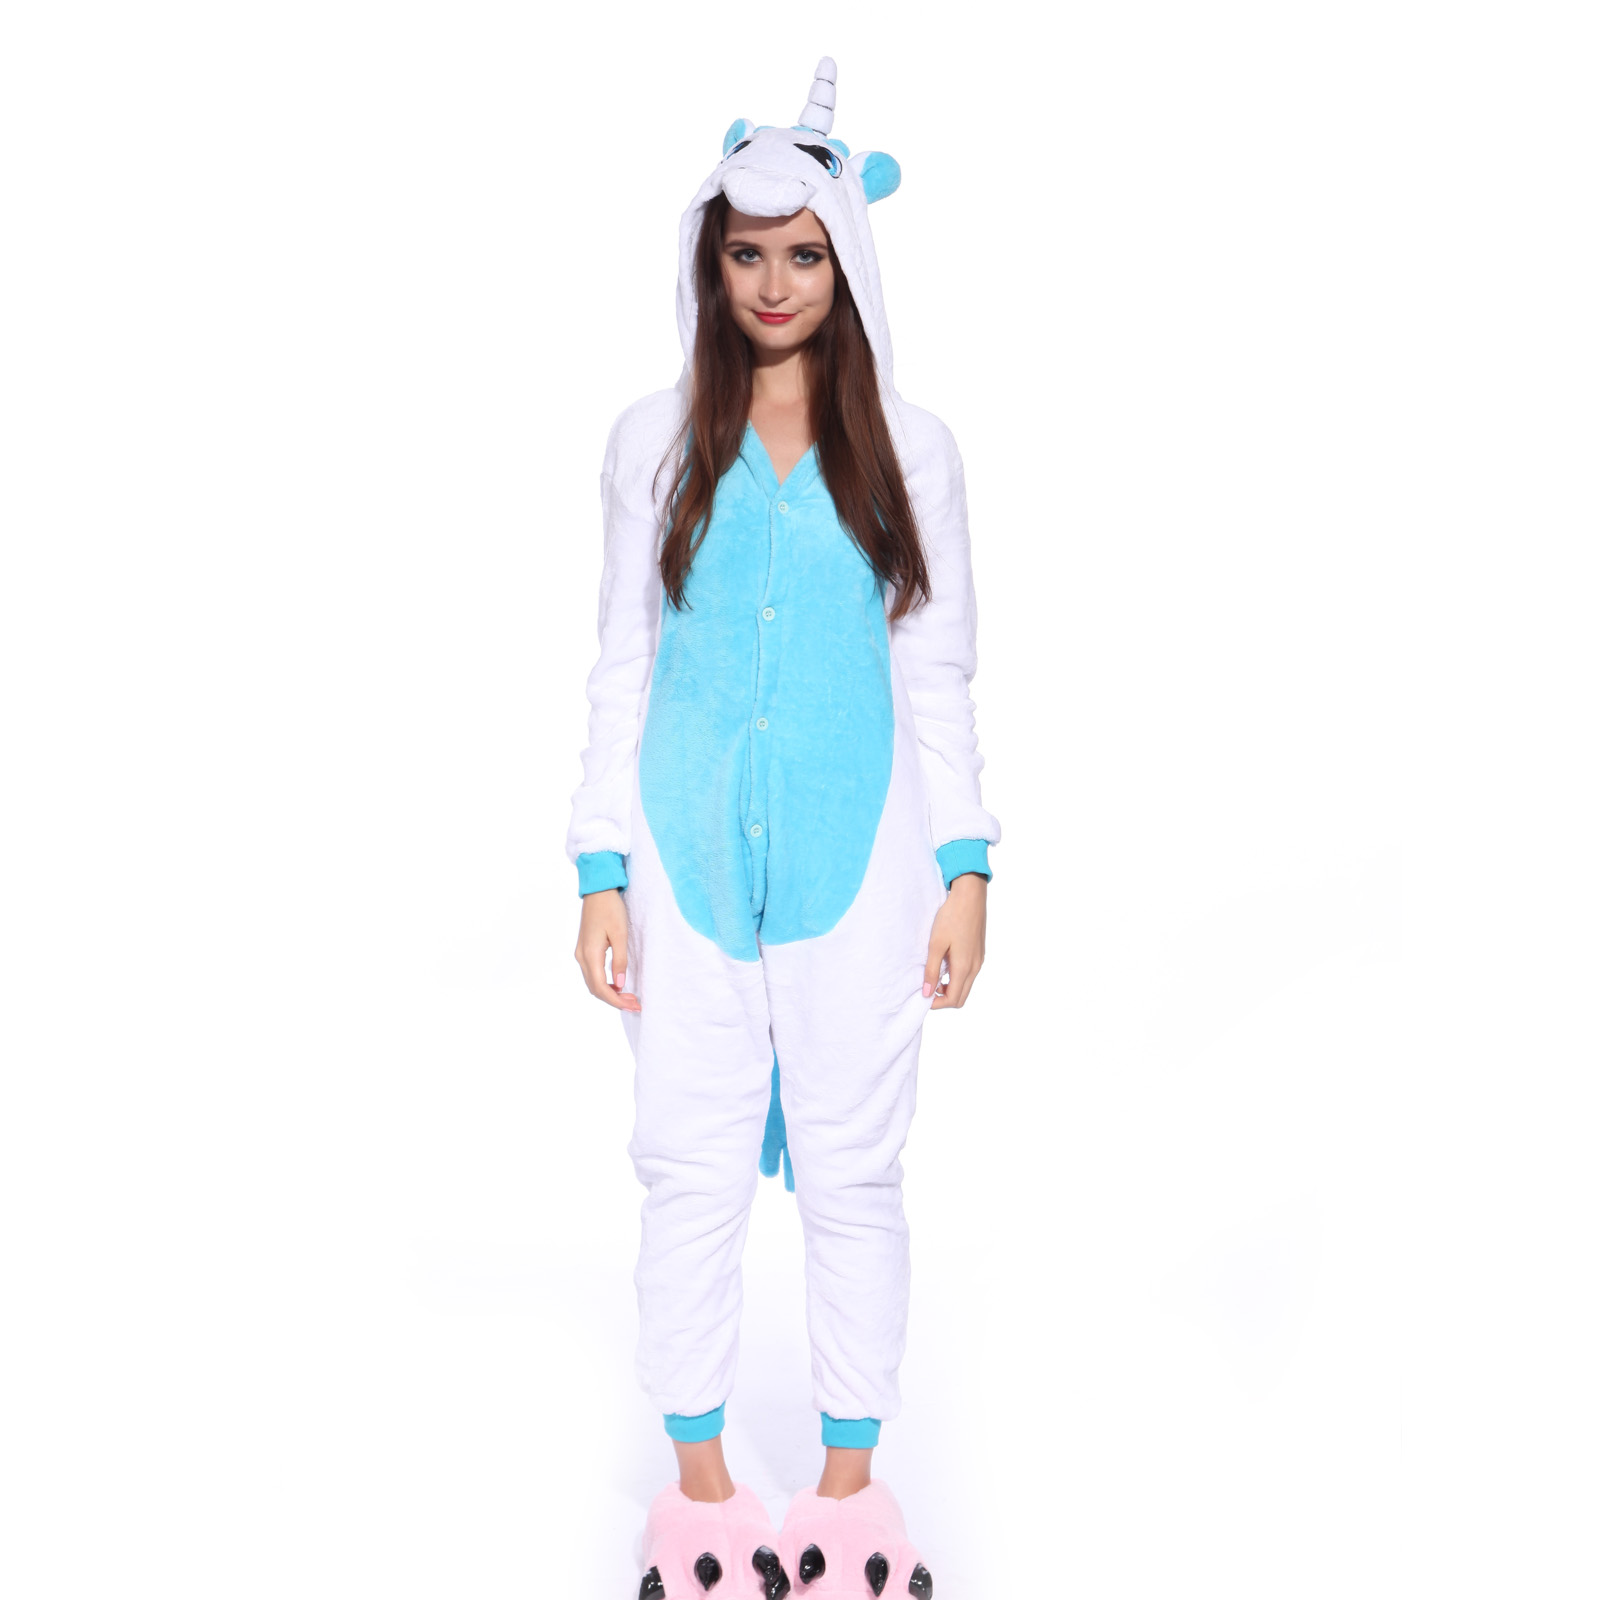 neu damen herren kost m kigurumi pyjama schlafanzug loungewear einhorn overalls ebay. Black Bedroom Furniture Sets. Home Design Ideas